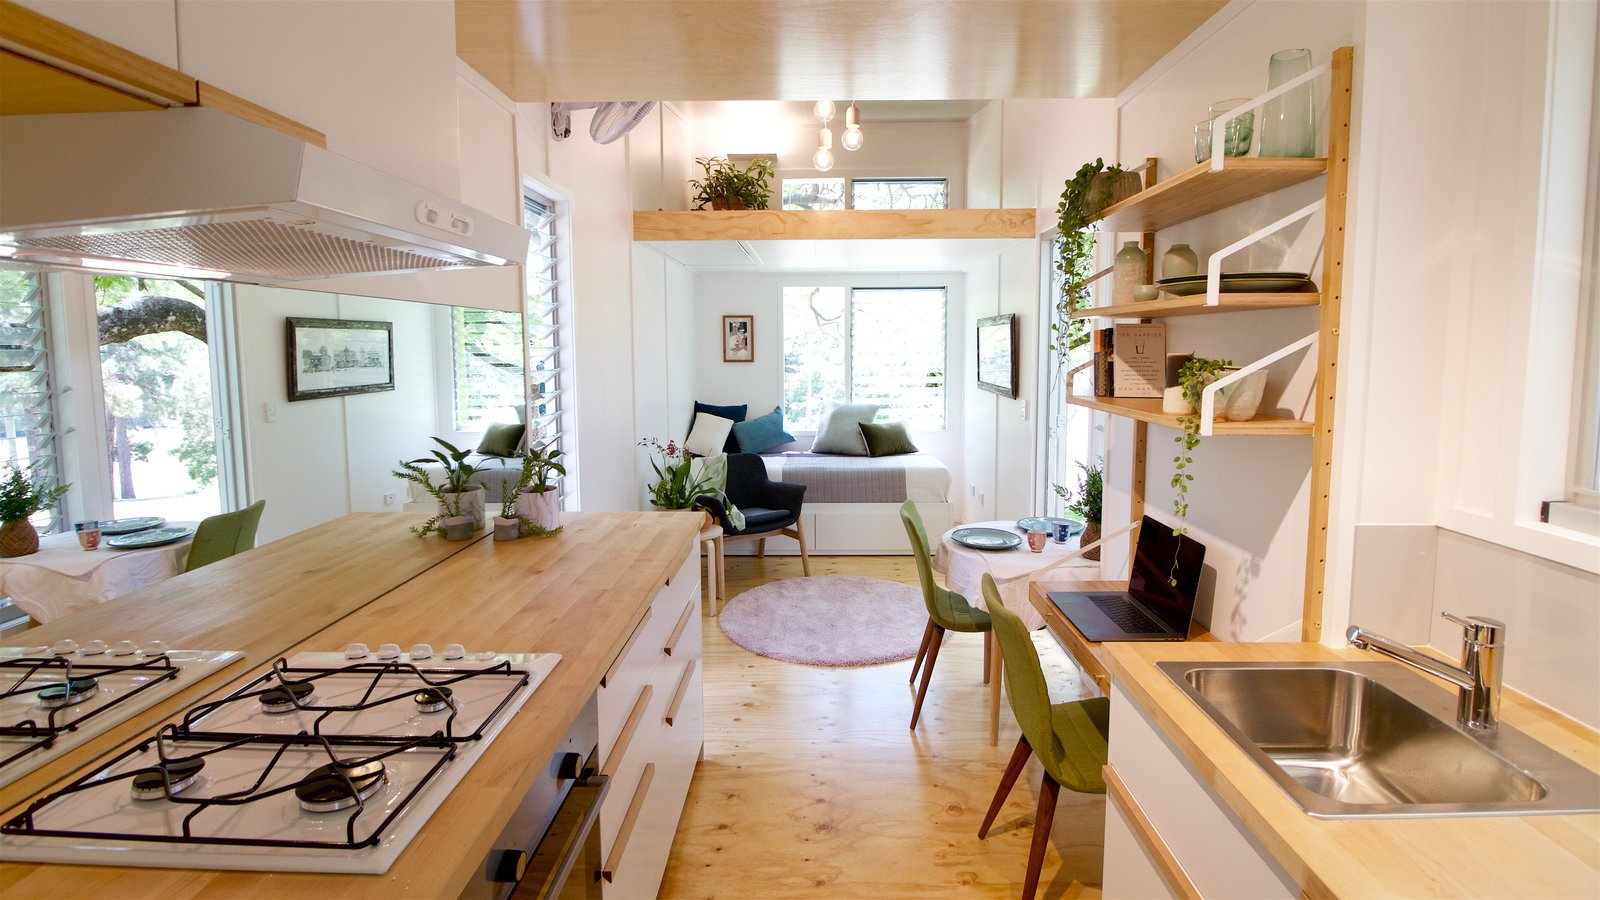 This Midcentury-Inspired Tiny House Radiates Clever Design